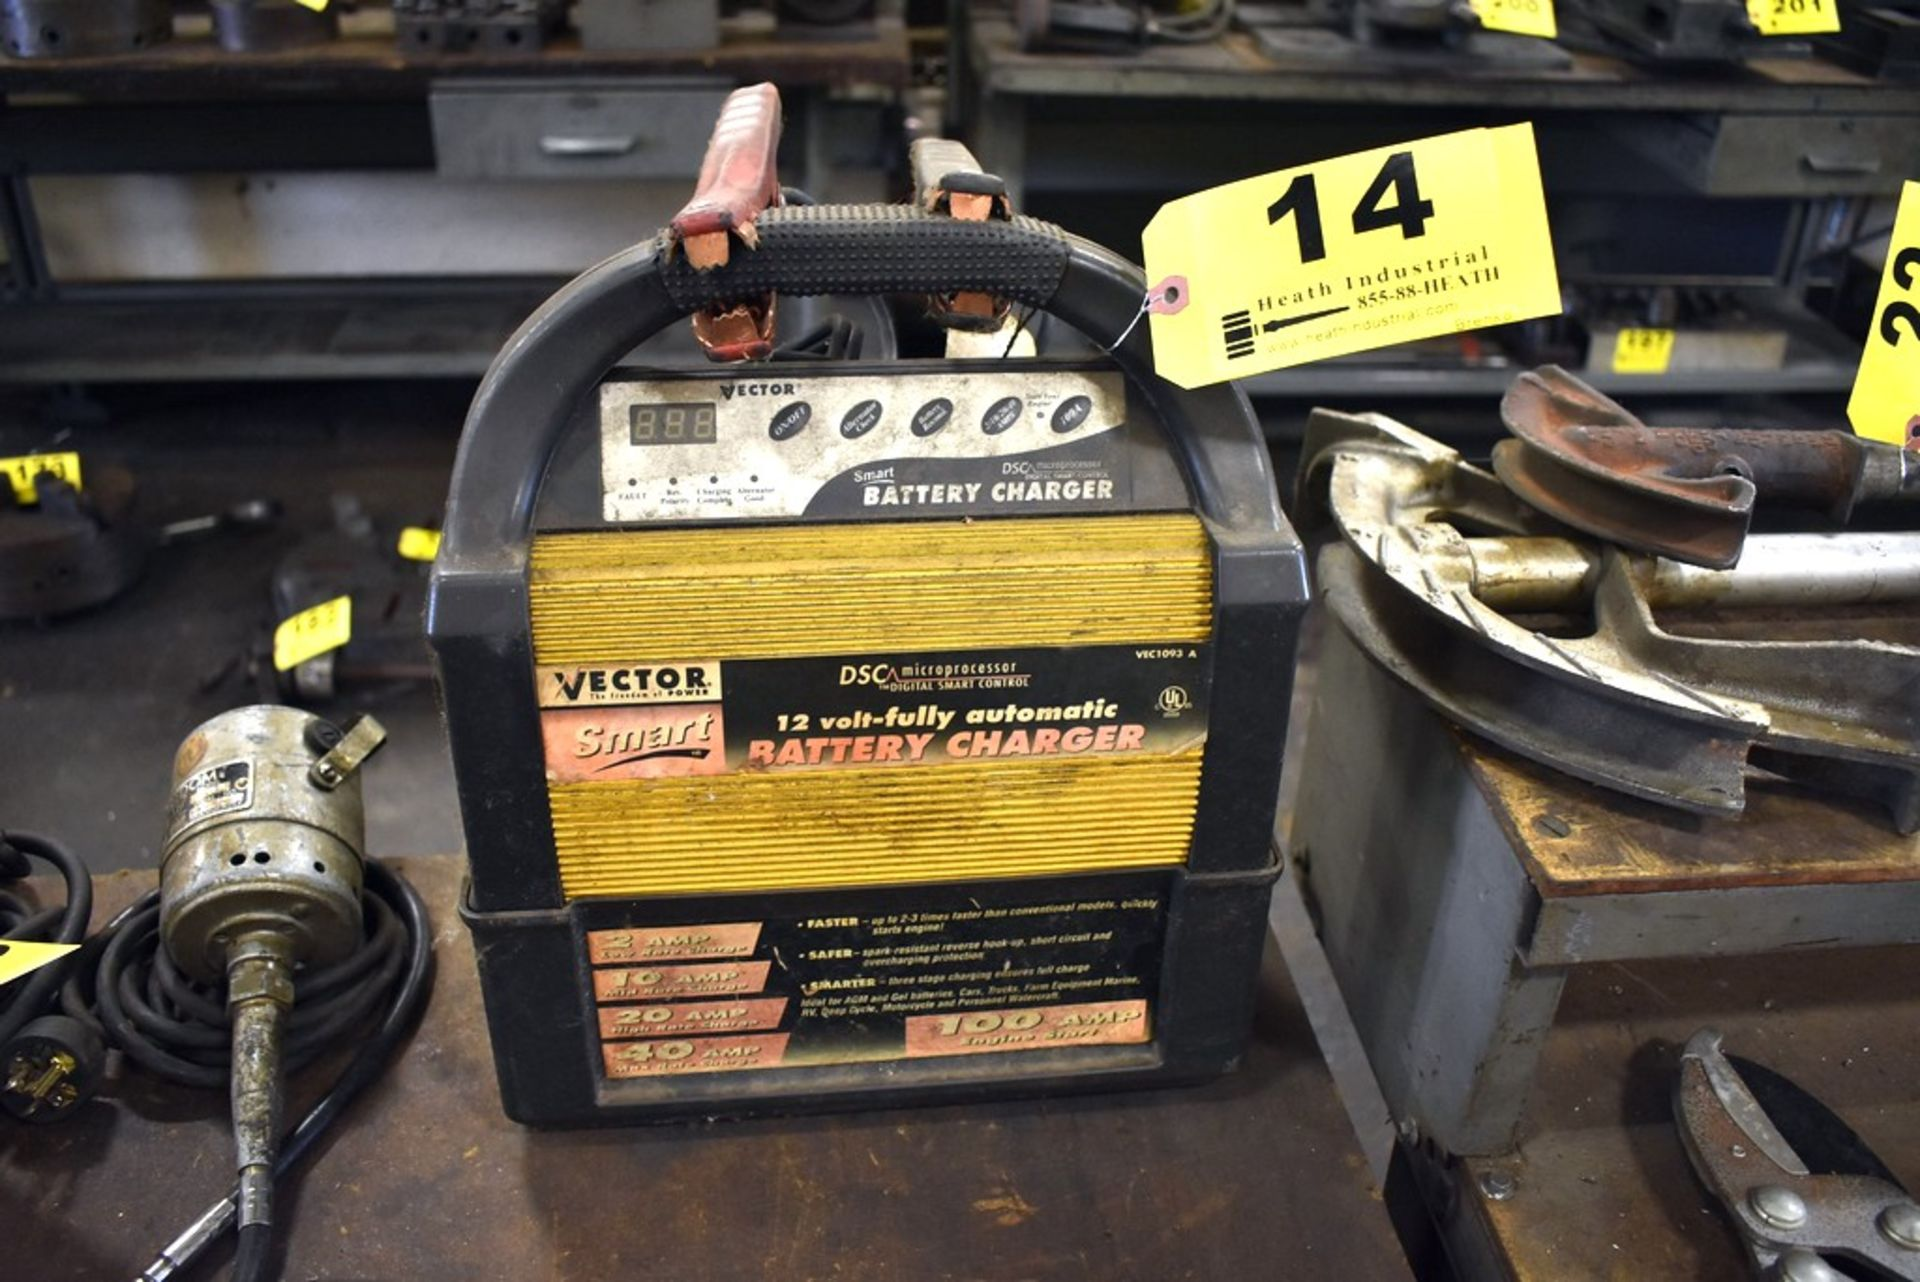 Lot 14 - VECTOR 12 VOLT AUTOMATIC BATTERY CHARGER